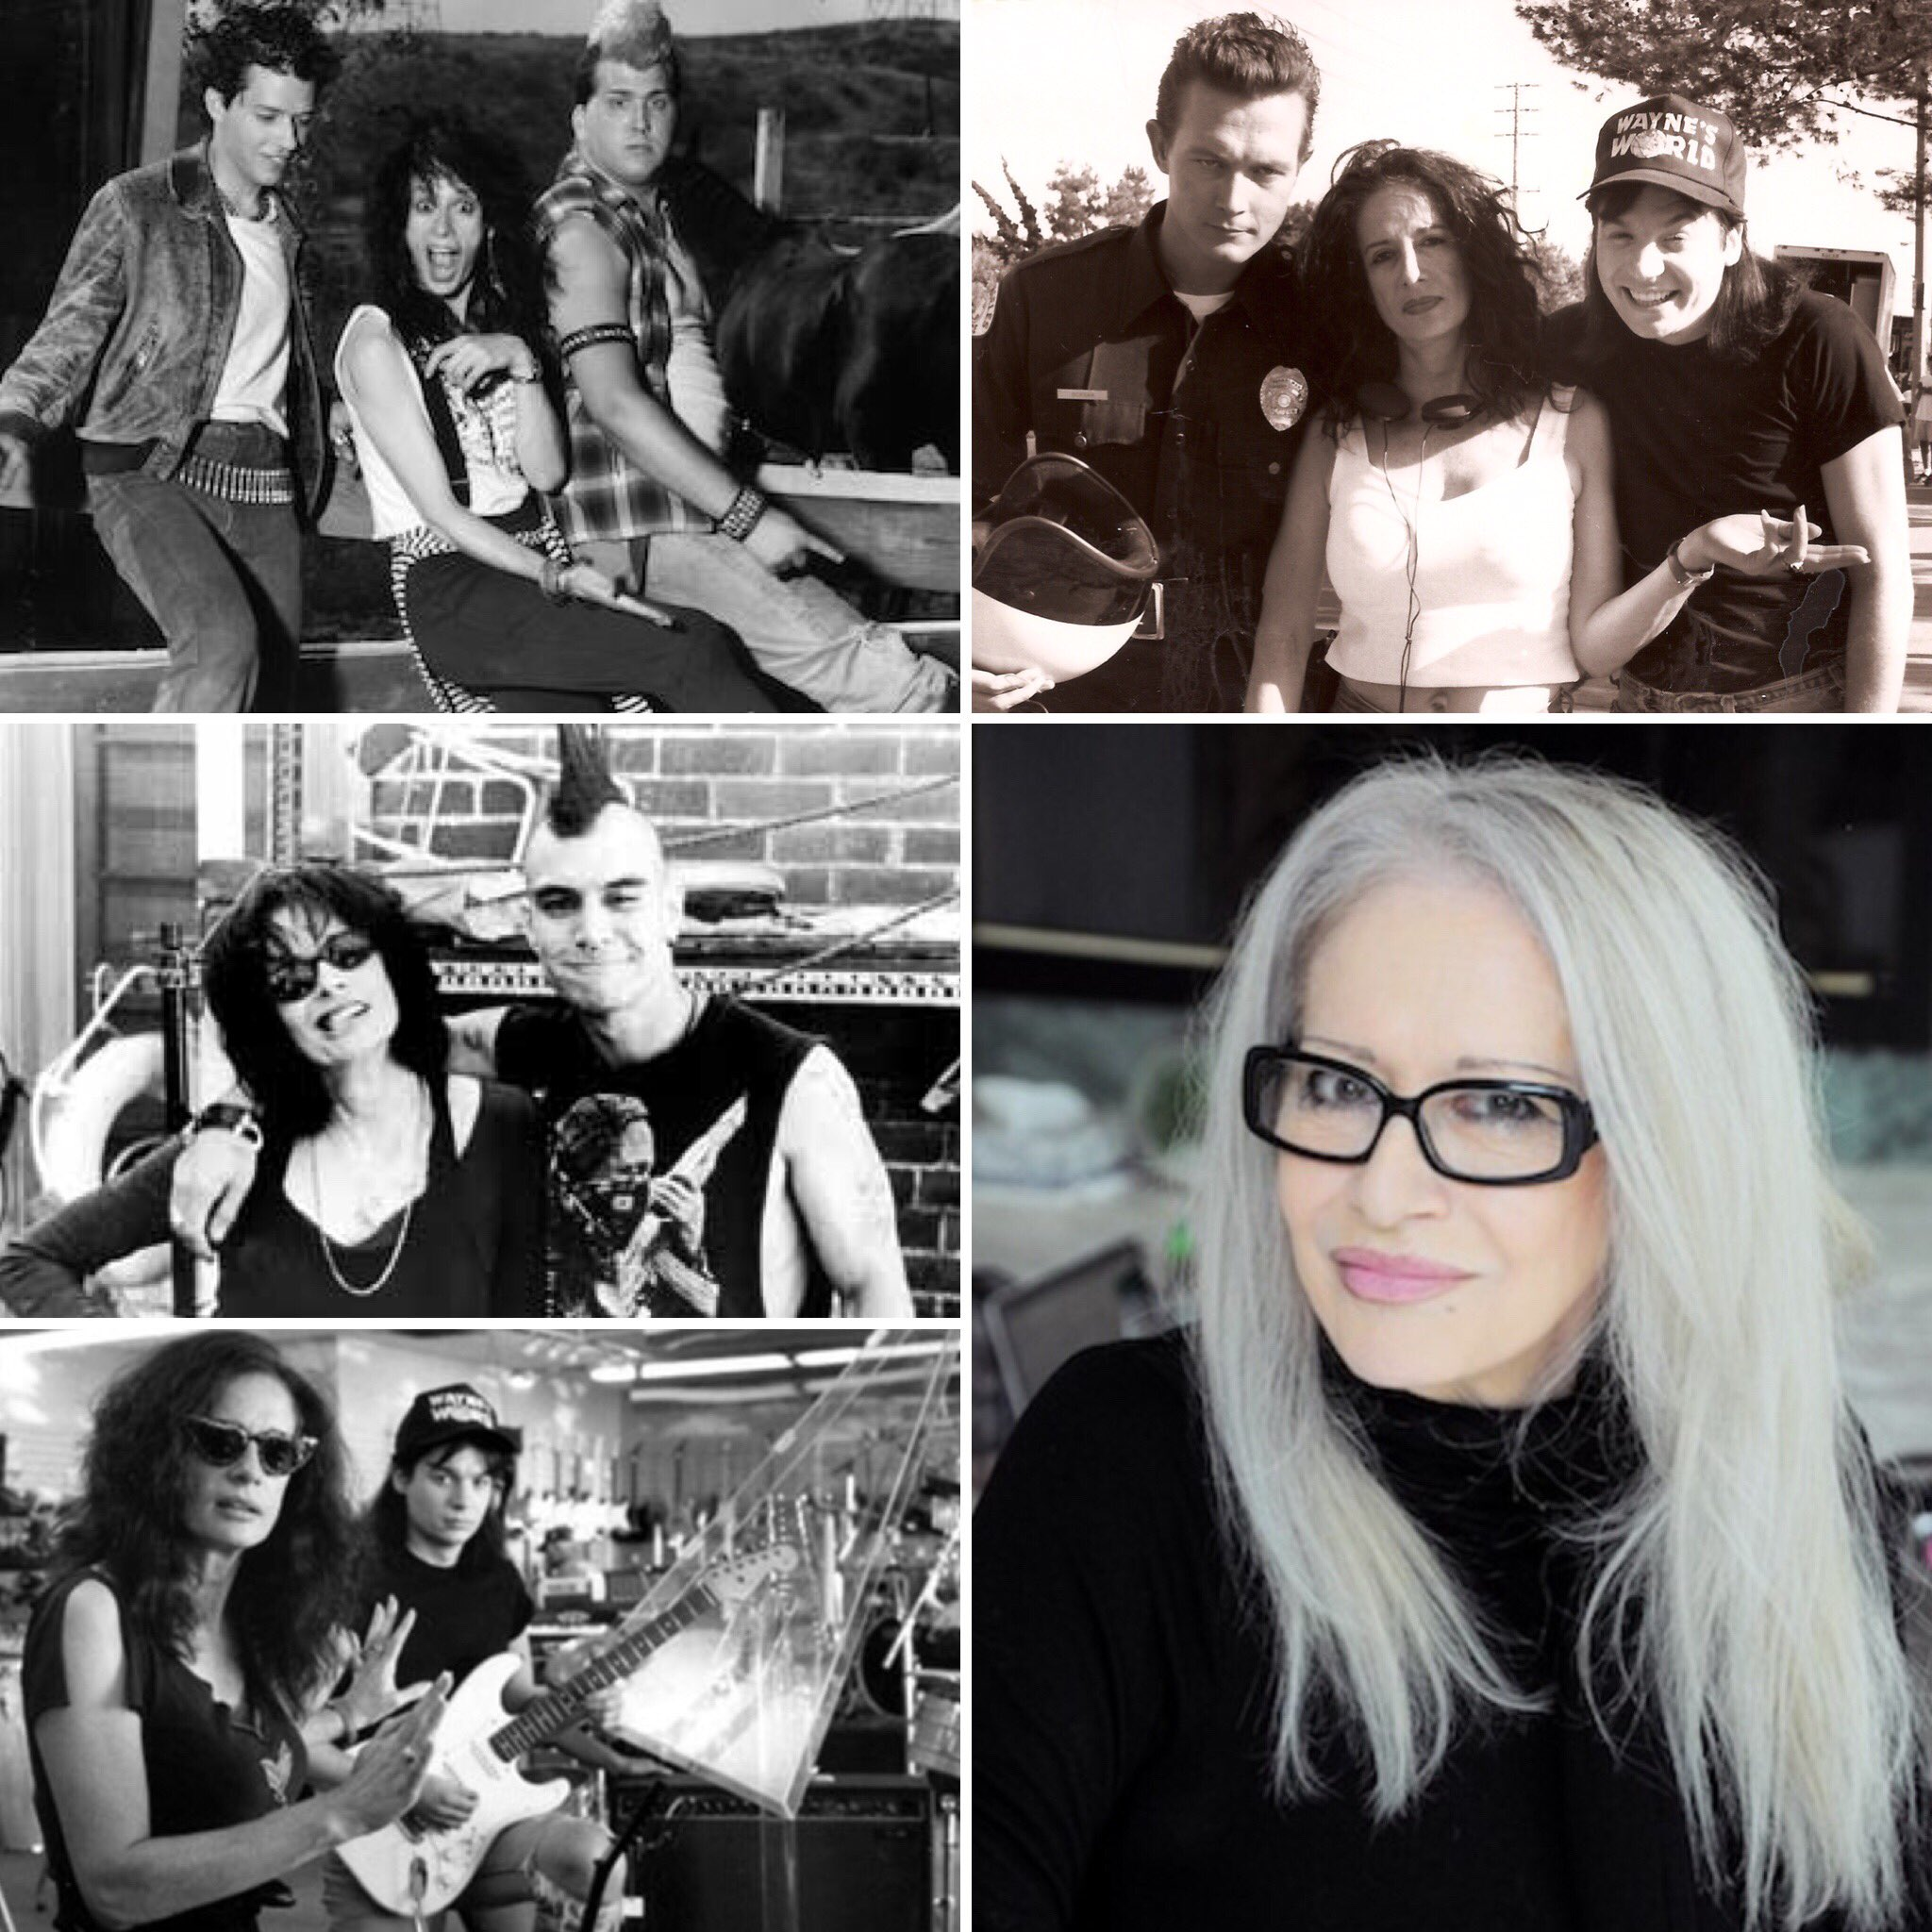 HAPPY BIRTHDAY TO THE PERPETUALLY COOL PENELOPE SPHEERIS! Let s get some pizza and watch DUDES